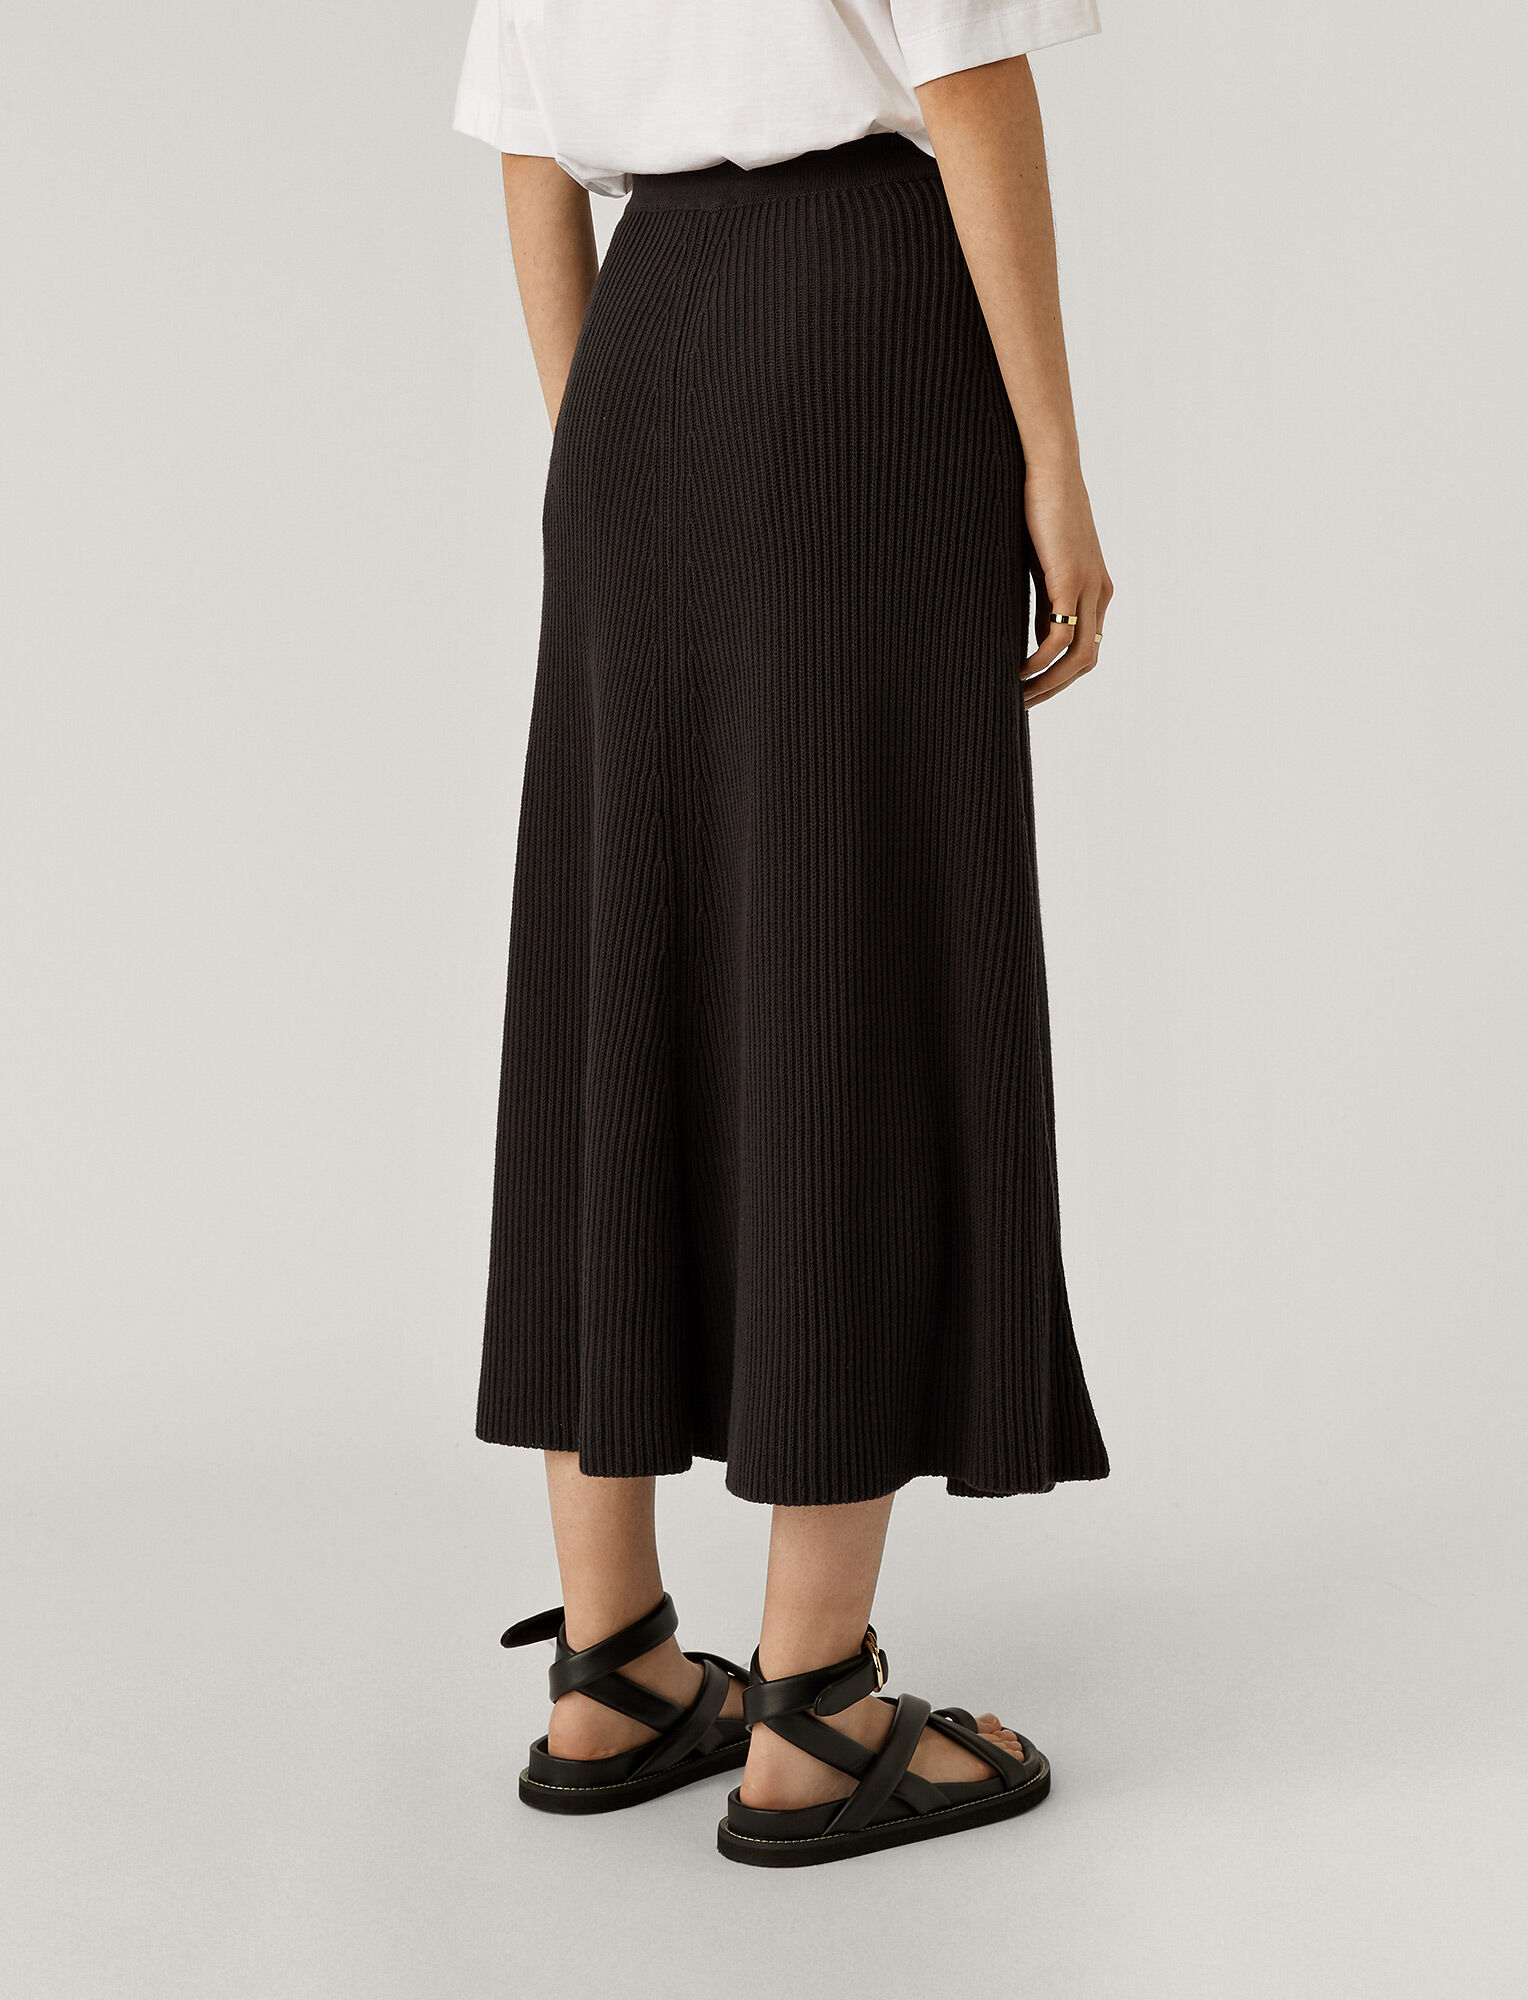 Joseph, Cote Anglaise Skirt, in CHARCOAL